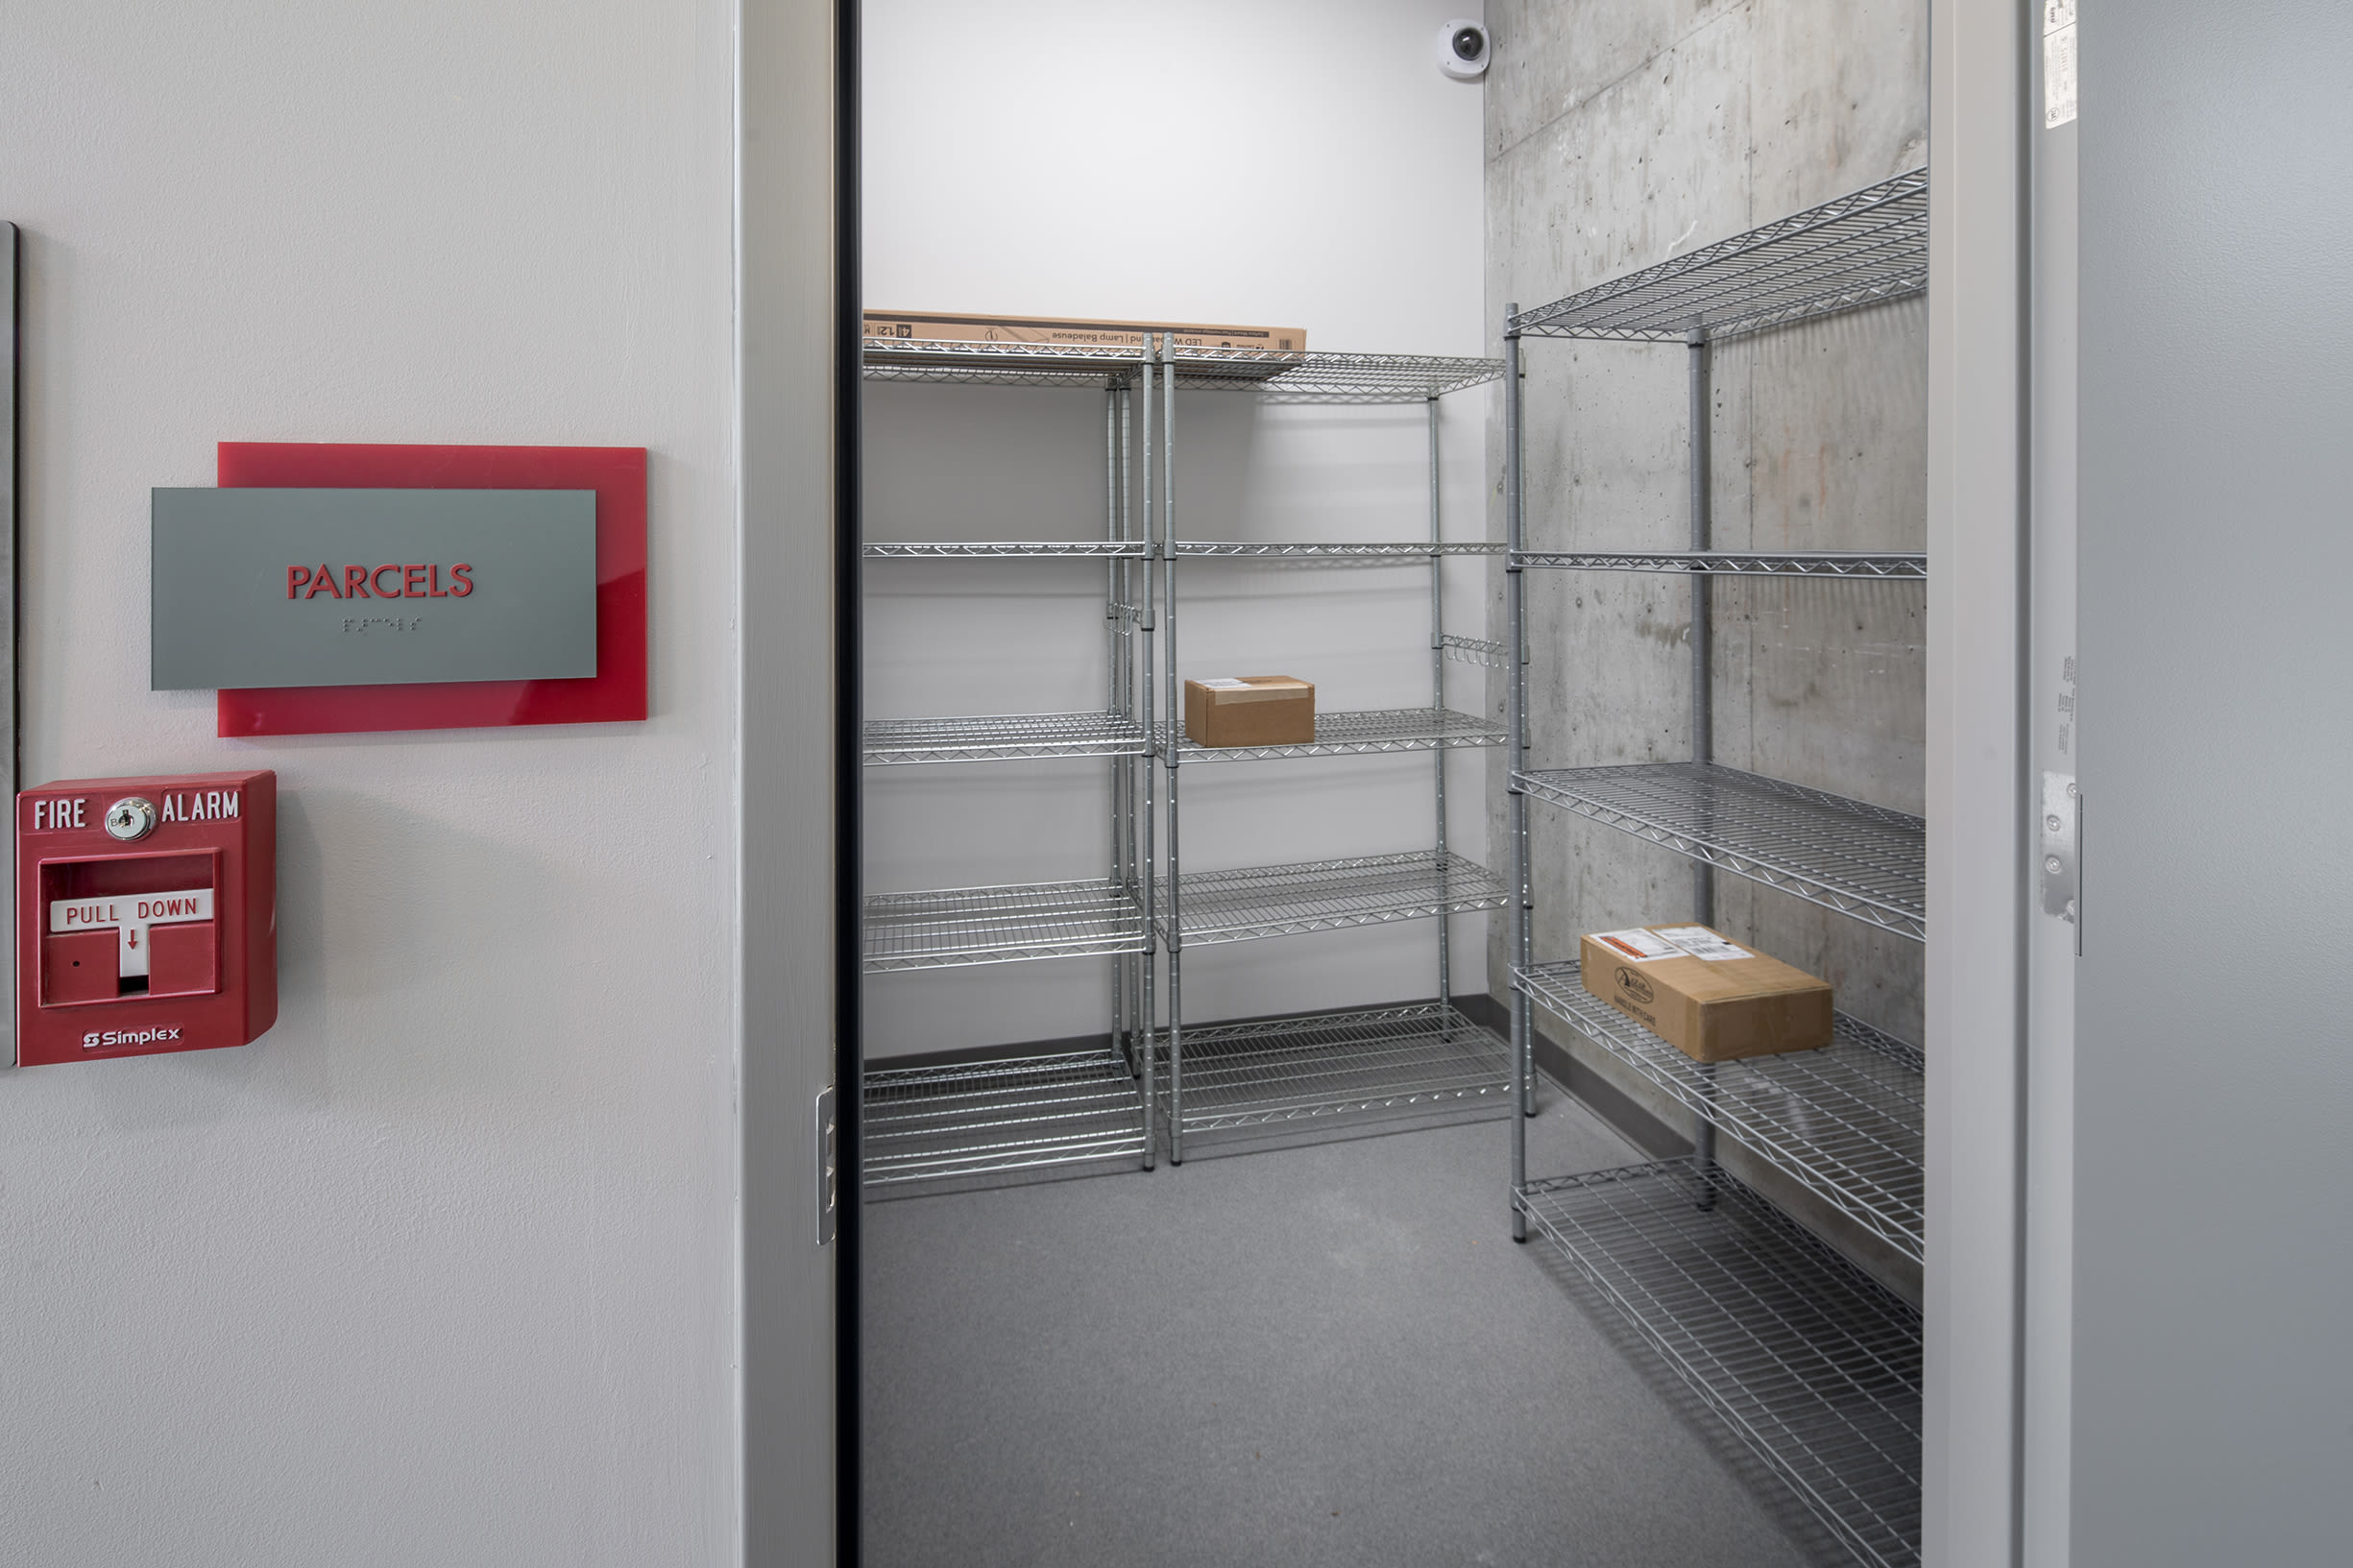 The package room at Ascend in Portland, OR